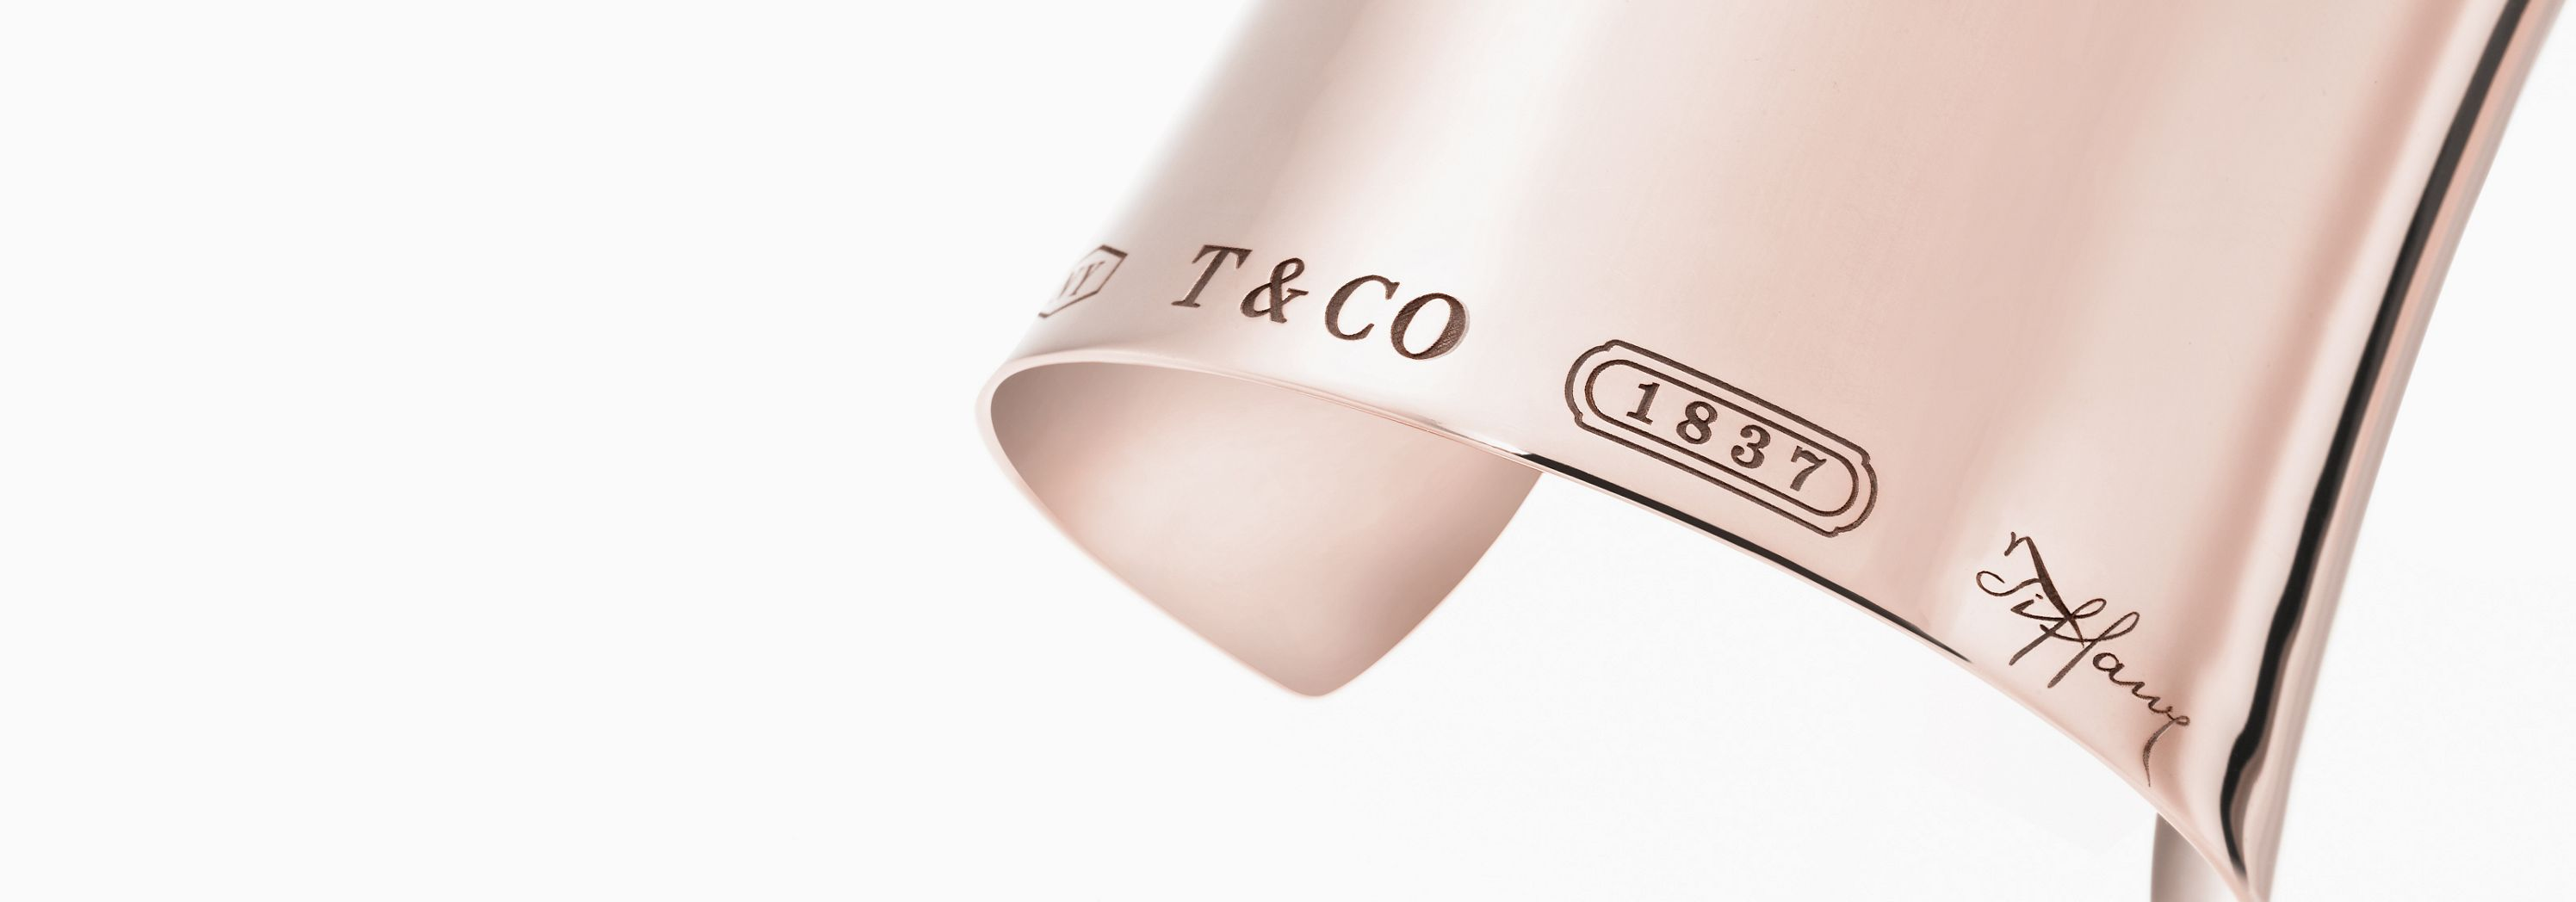 7cc9d43c2bc 2012. Tiffany introduces Rubedo® metal to honor the ...